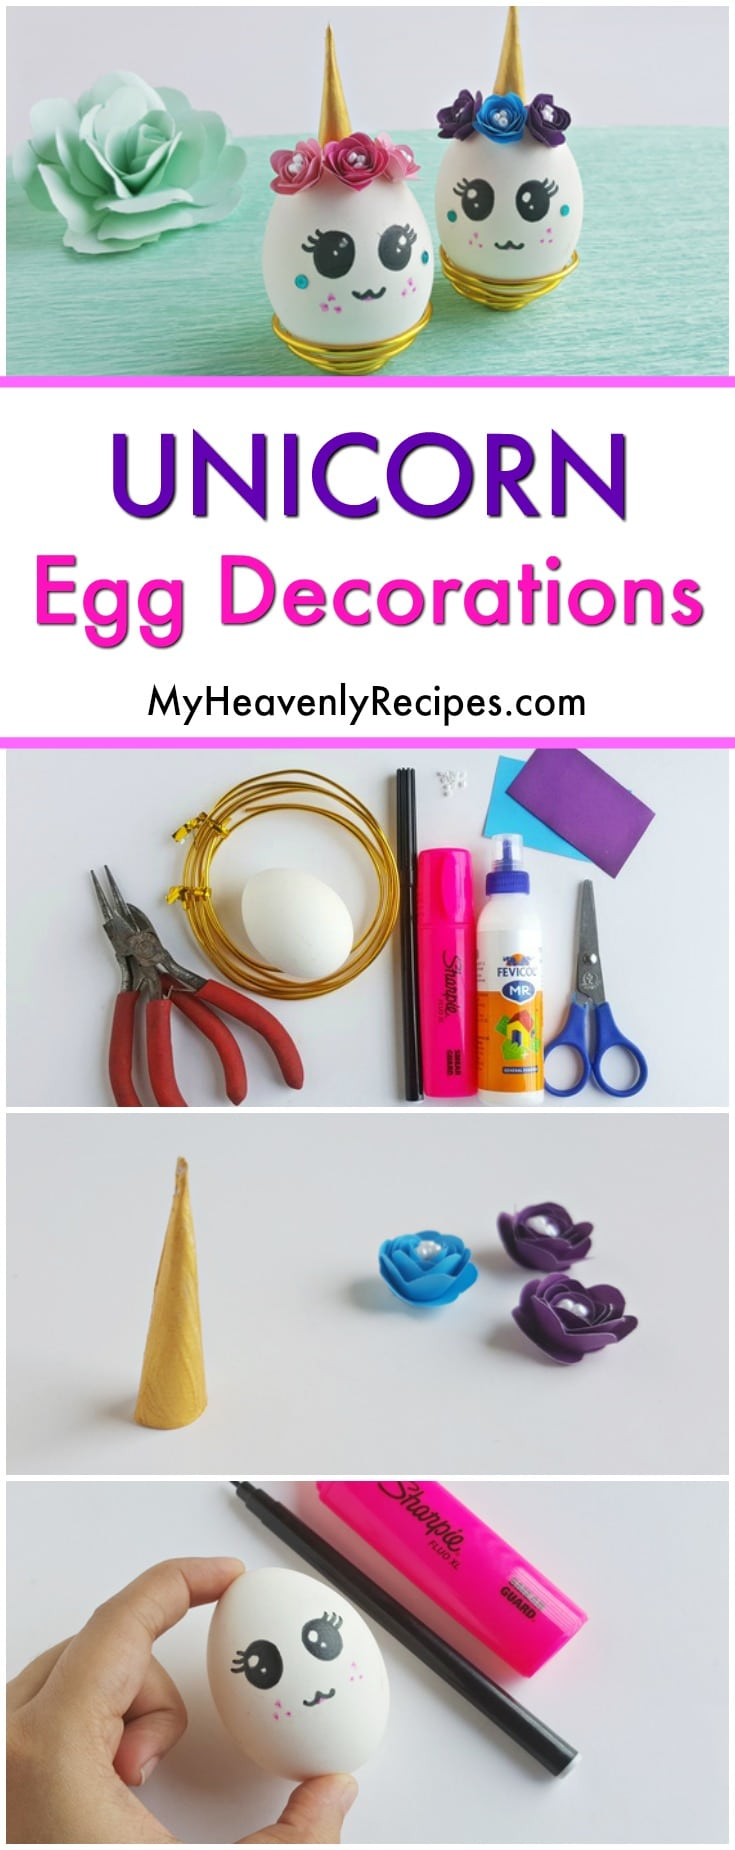 Get ready for an adorable DIY project that is PERFECT for your next unicorn birthday party! These Unicorn Egg Decorations are super fun to make and too cute for words. They're the perfect unicorn craft or unicorn decor project. #unicorn #unicorncrafts #unicornparty #diy #crafts